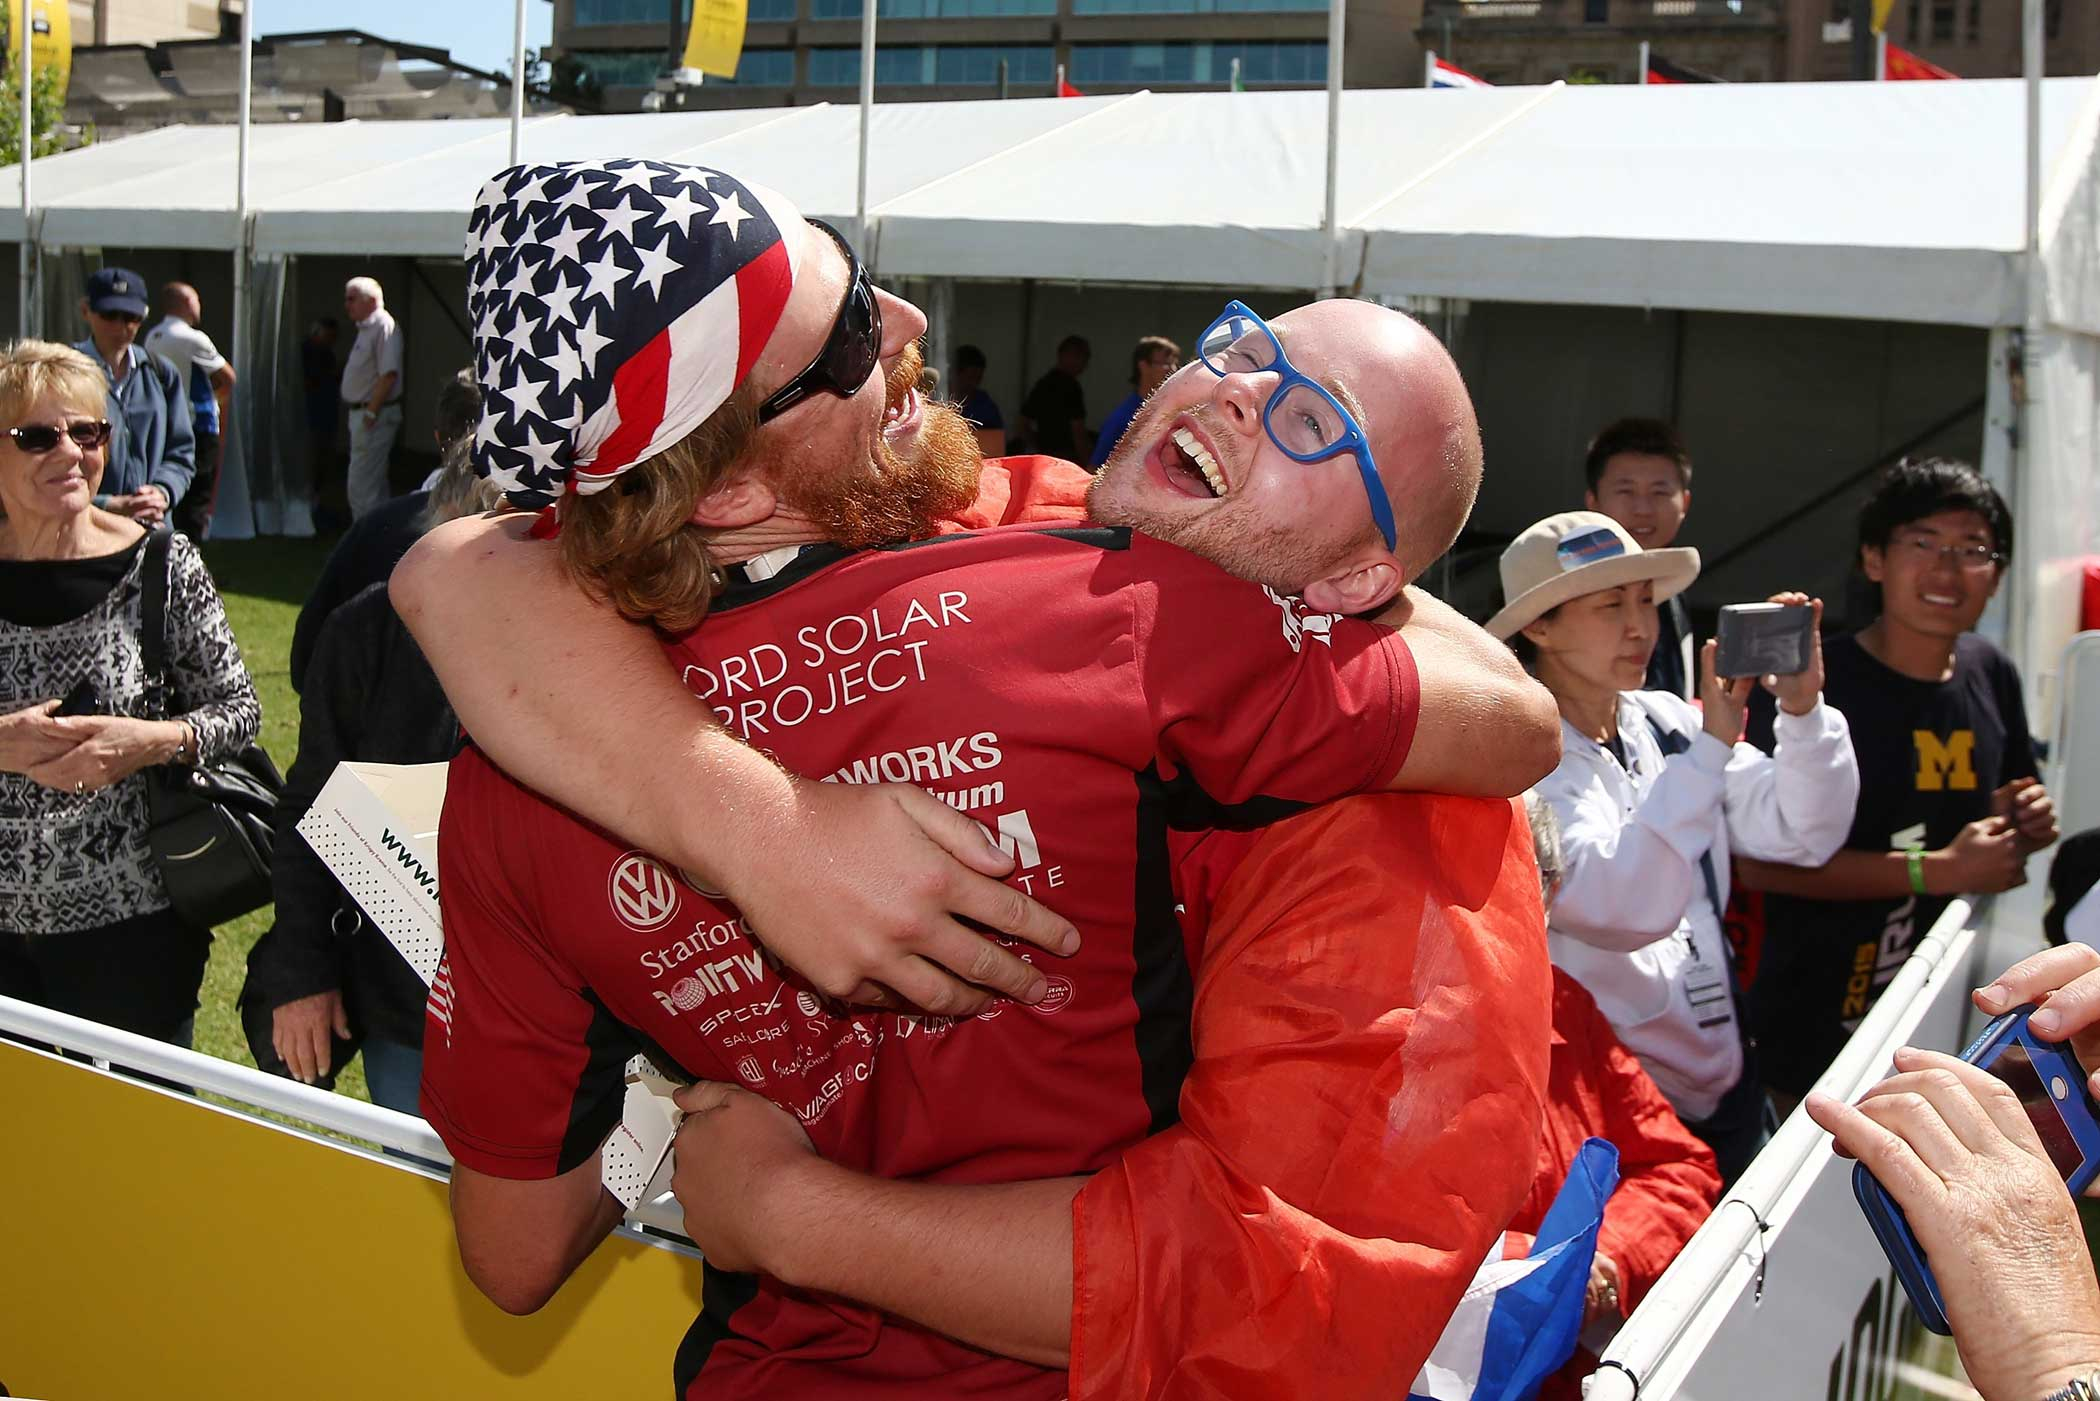 Members of the Stanford Solar Car Project team celebrate after finishing the race at Victoria Square in Adelaide, Australia on Oct. 22, 2015.